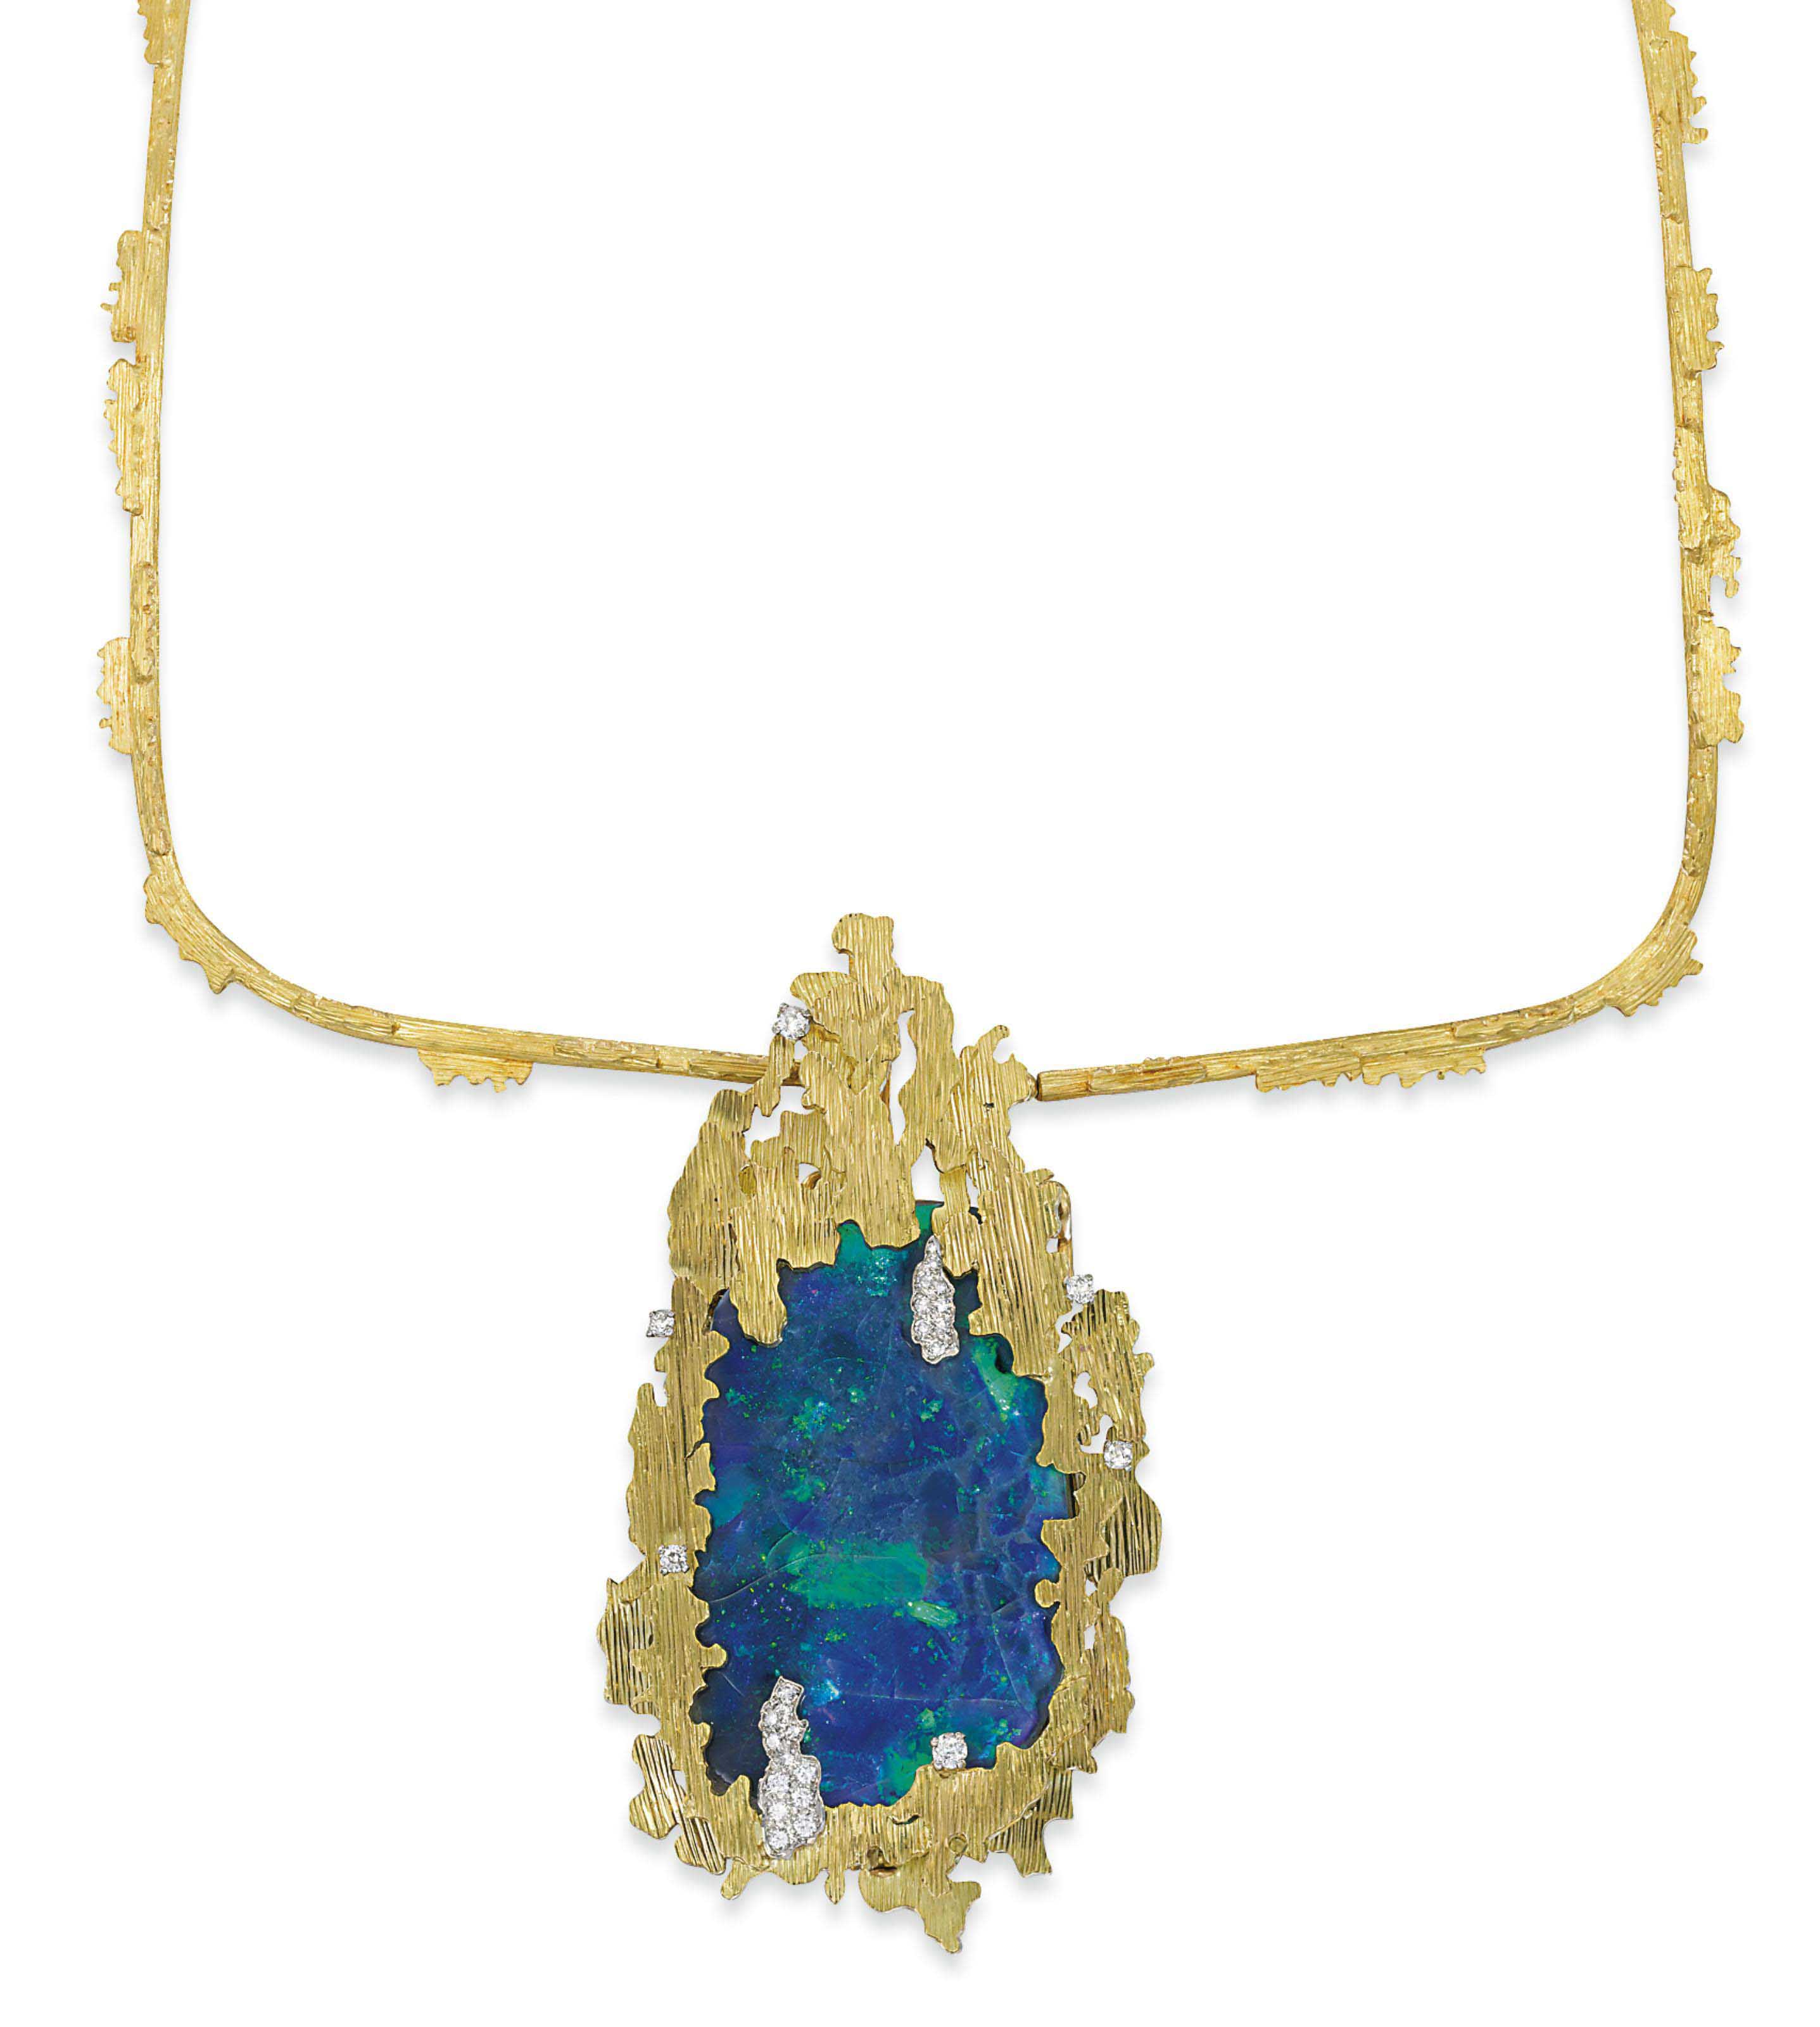 AN OPAL AND GOLD PENDENT NECKLACE, BY GRIMA